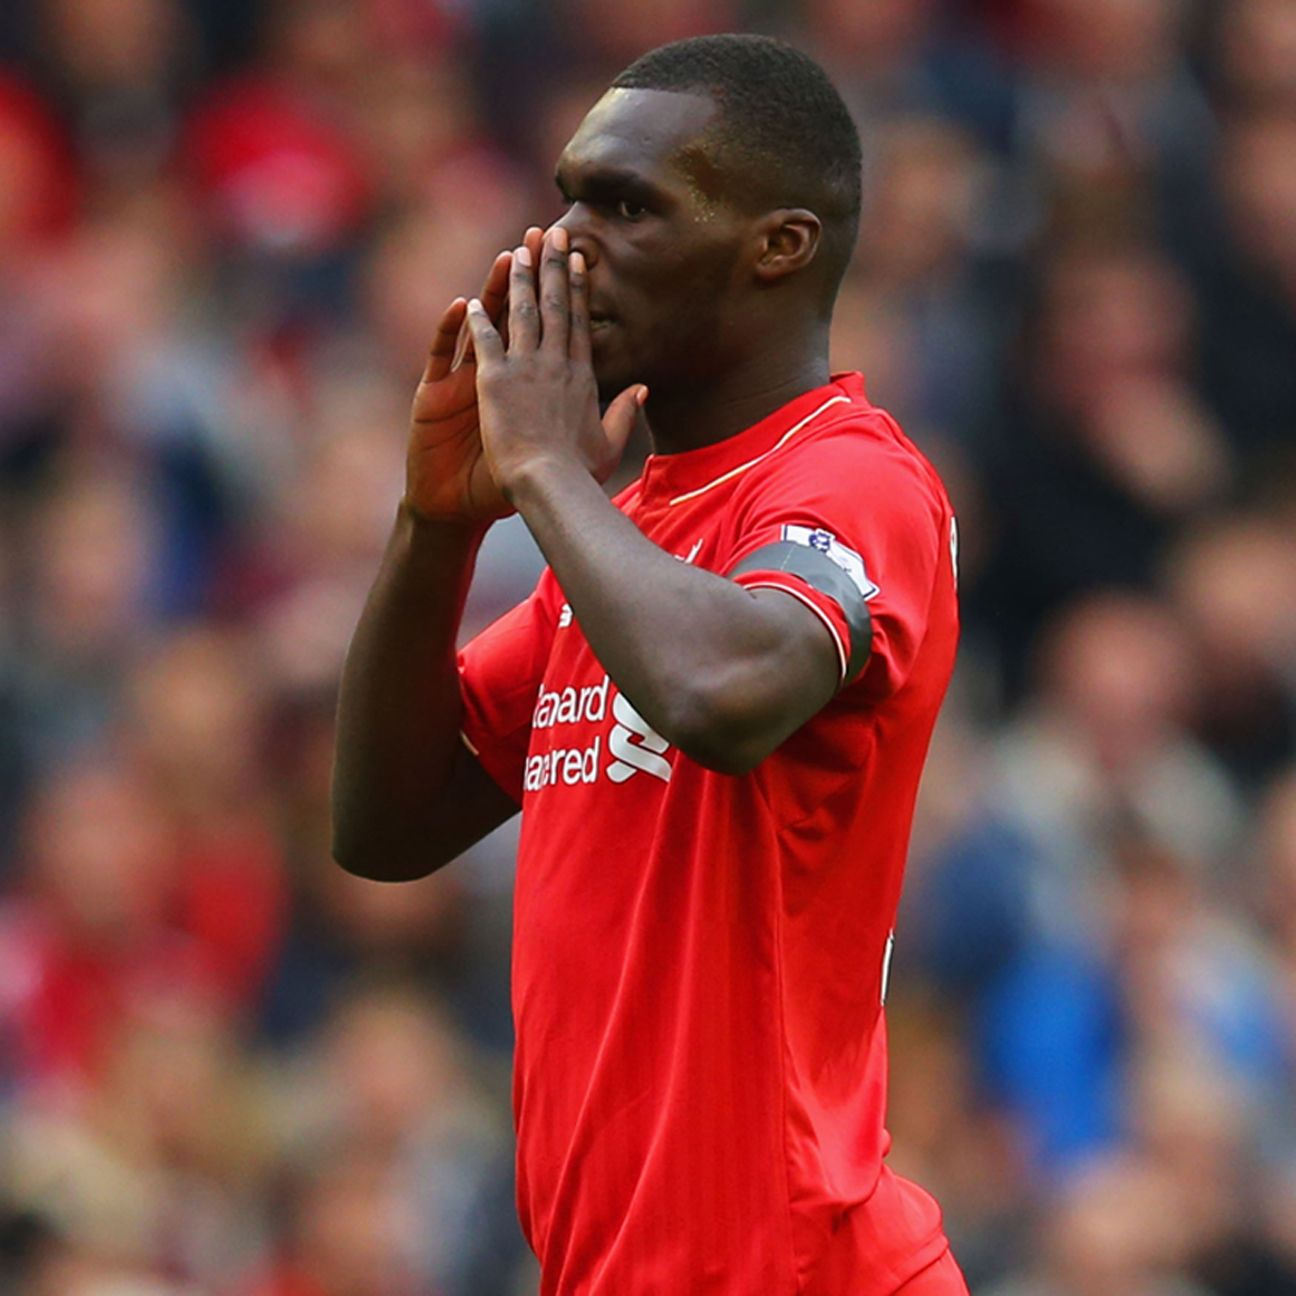 After three goal-filled seasons at Aston Villa, Christian Benteke has found the going tough at Liverpool.